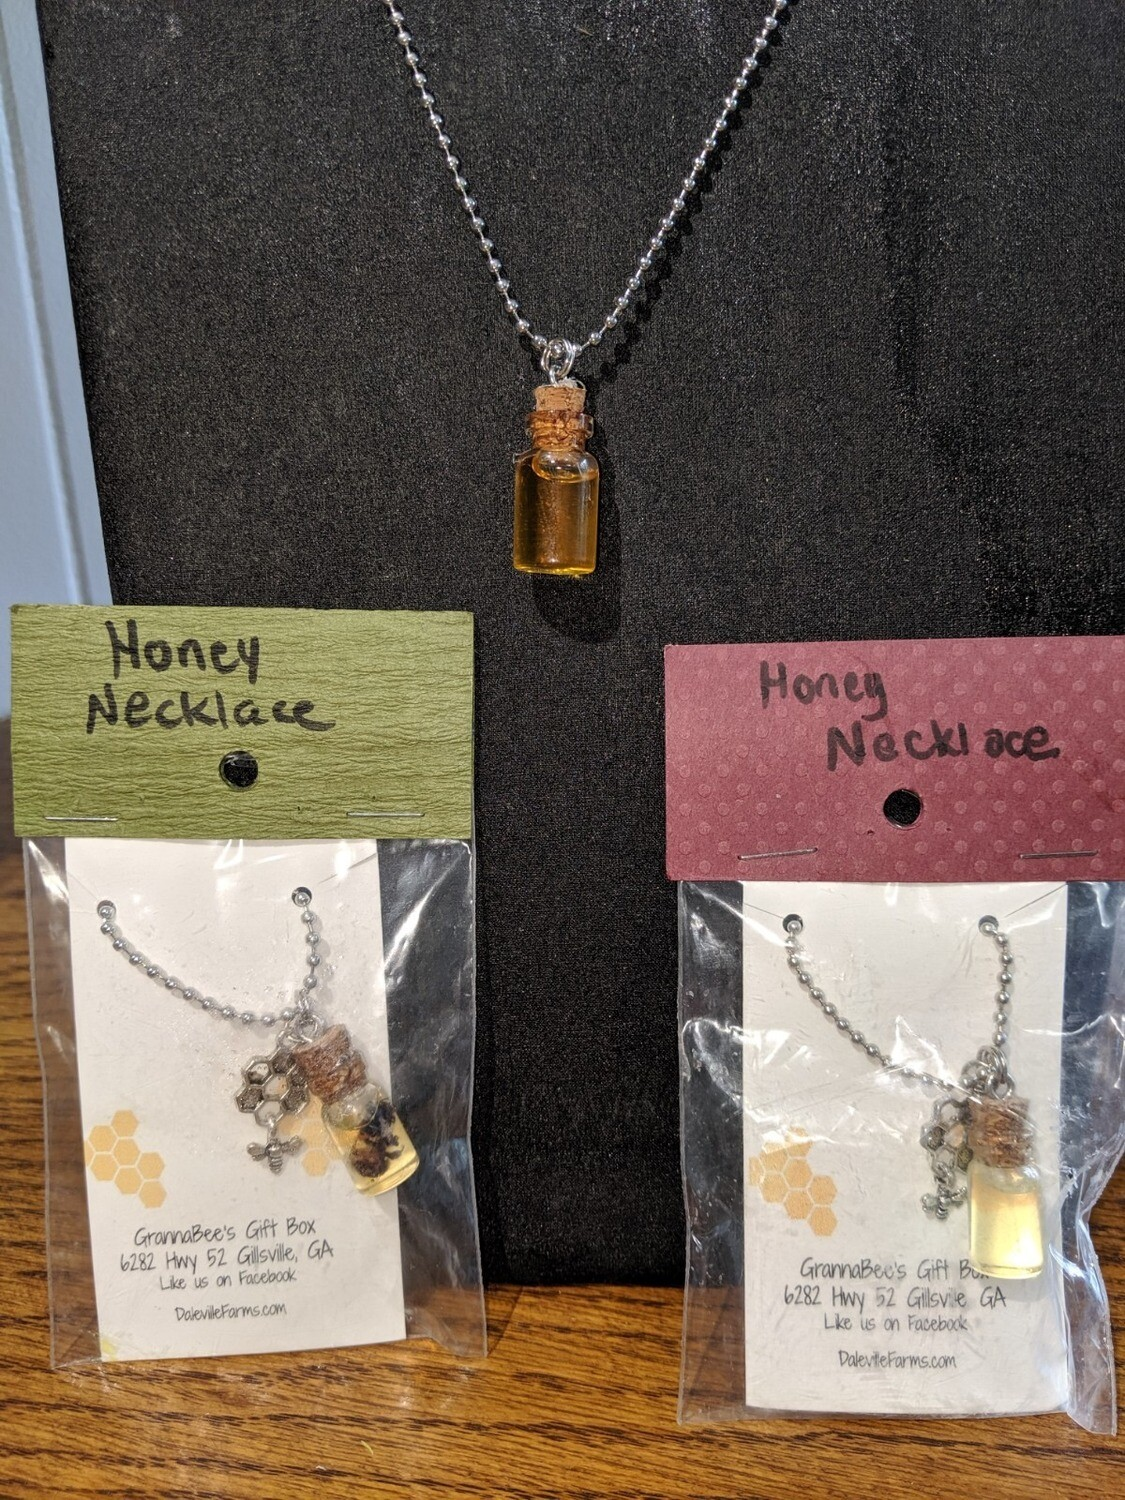 Honey Necklace with Charm & Bee